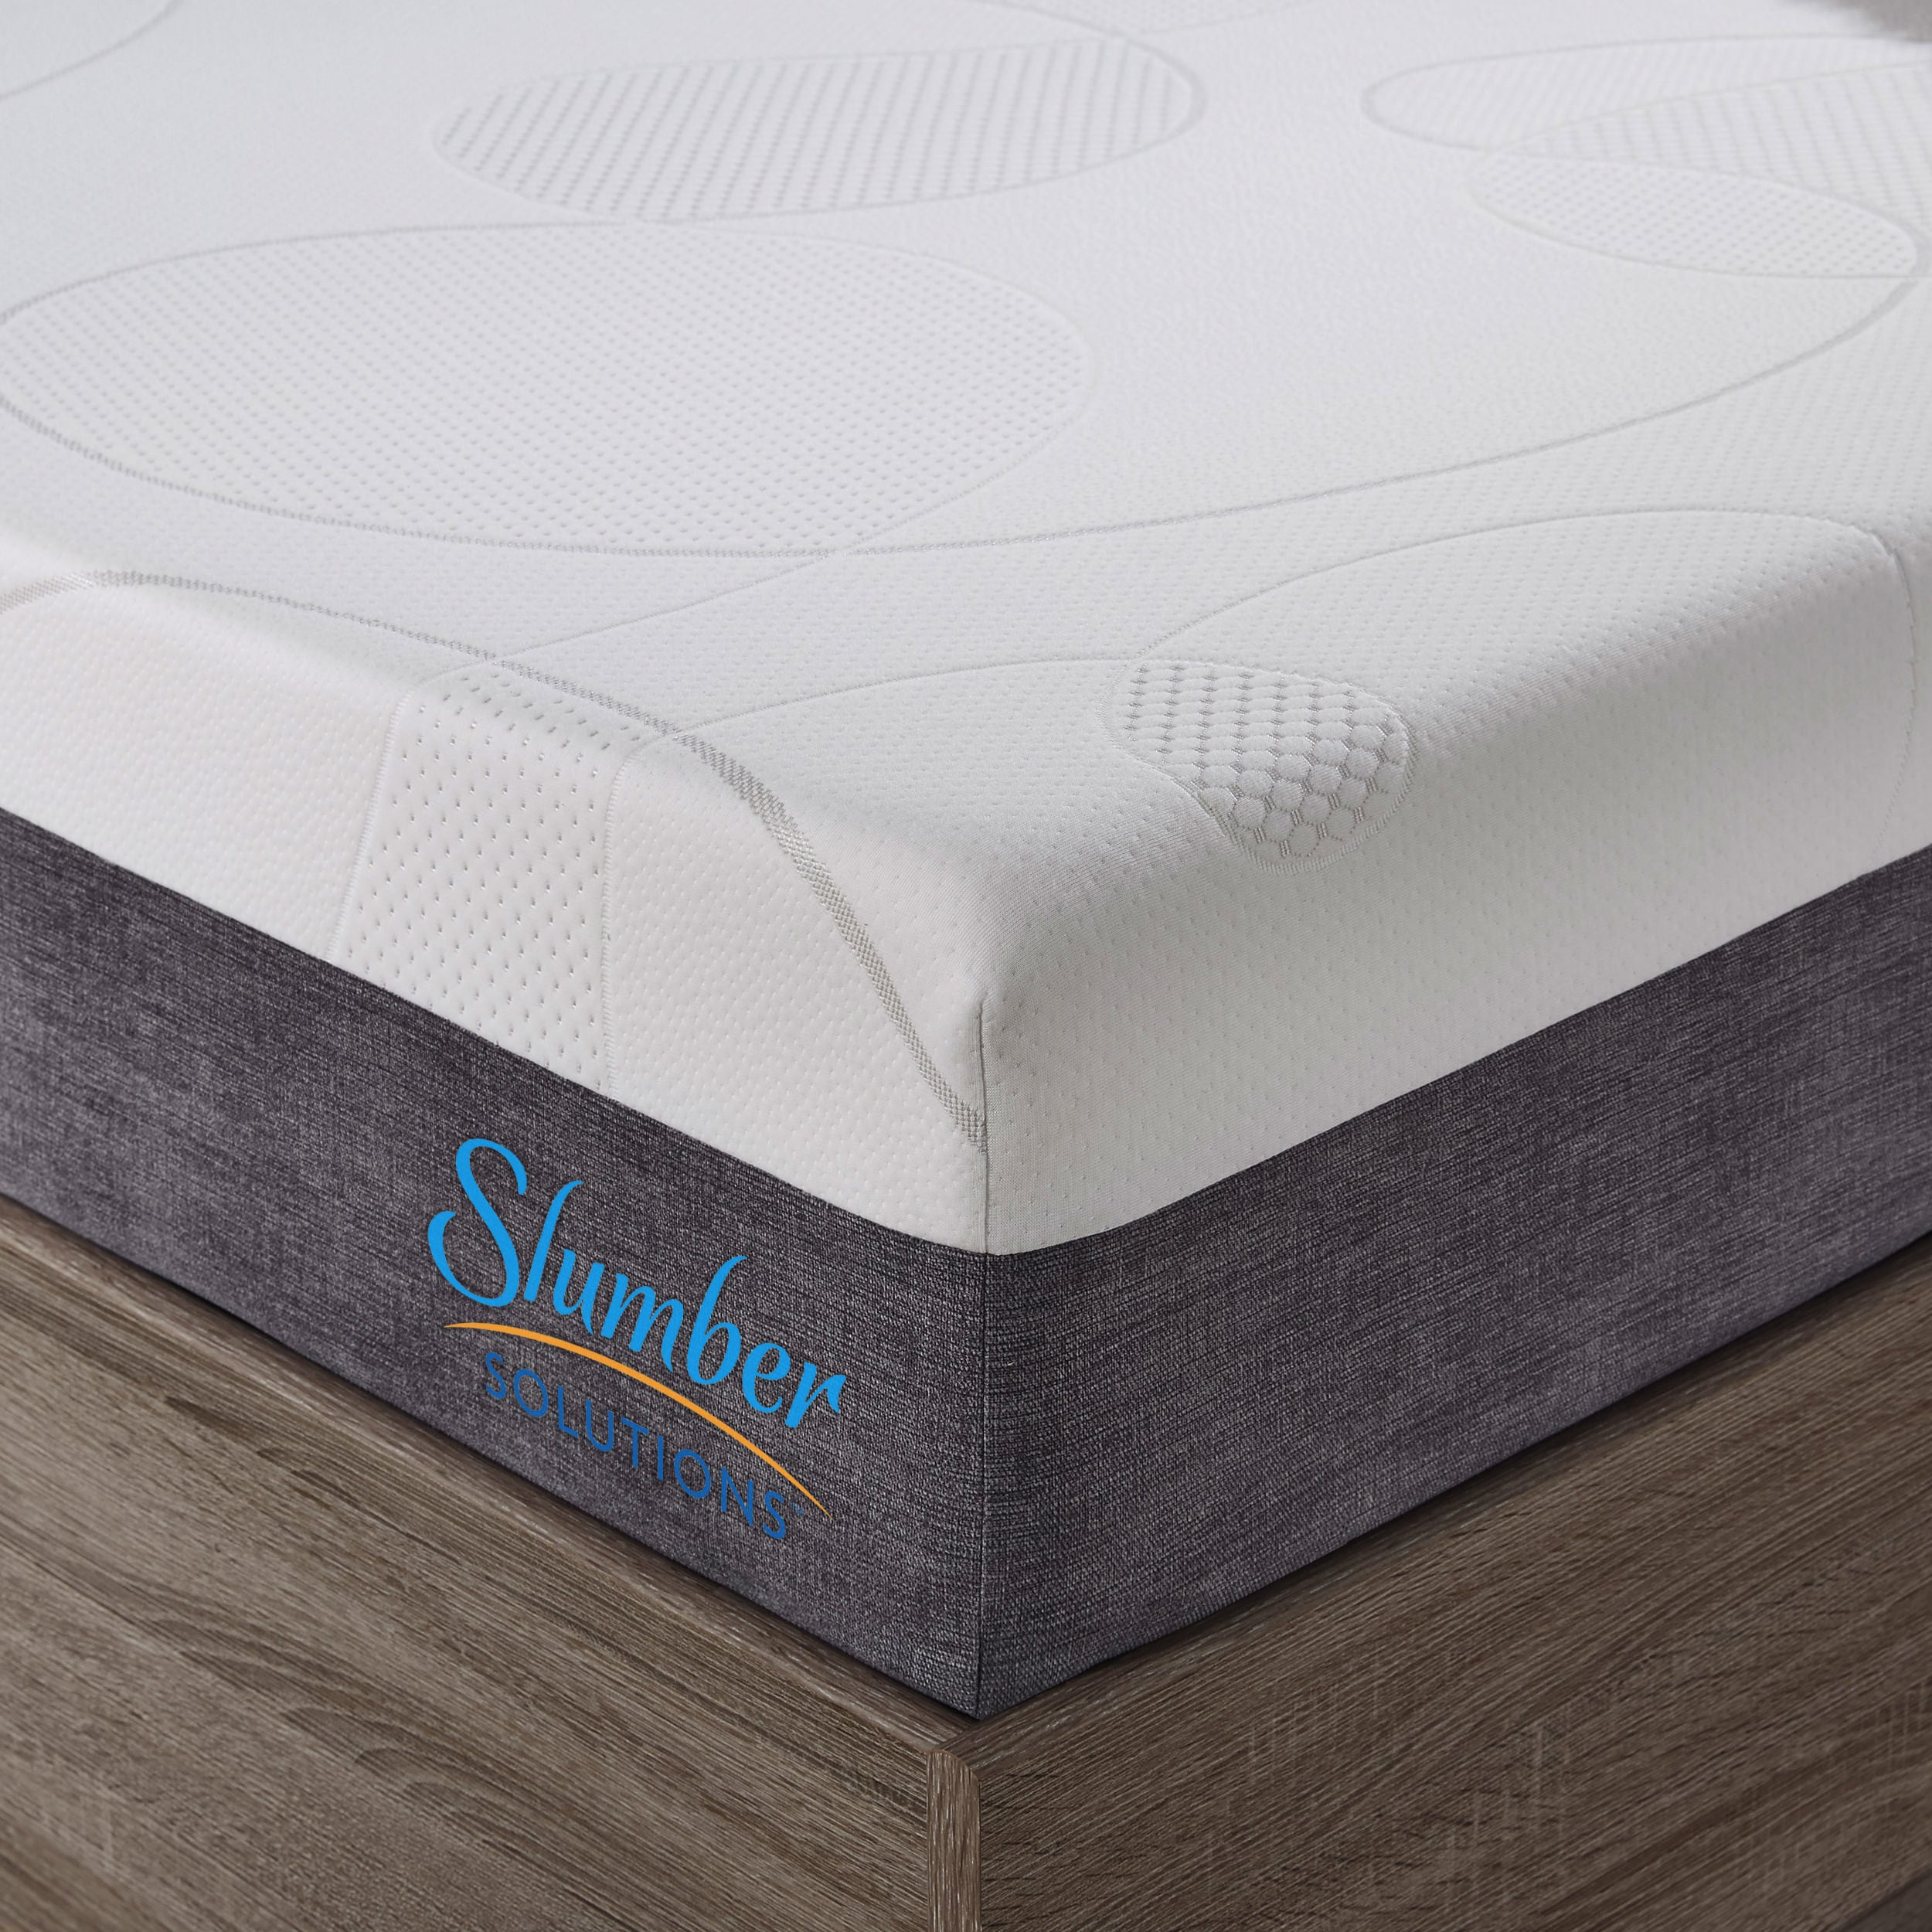 revive west bamboo foam collections products top memory mattresses therapy rest inch egg gel mattress